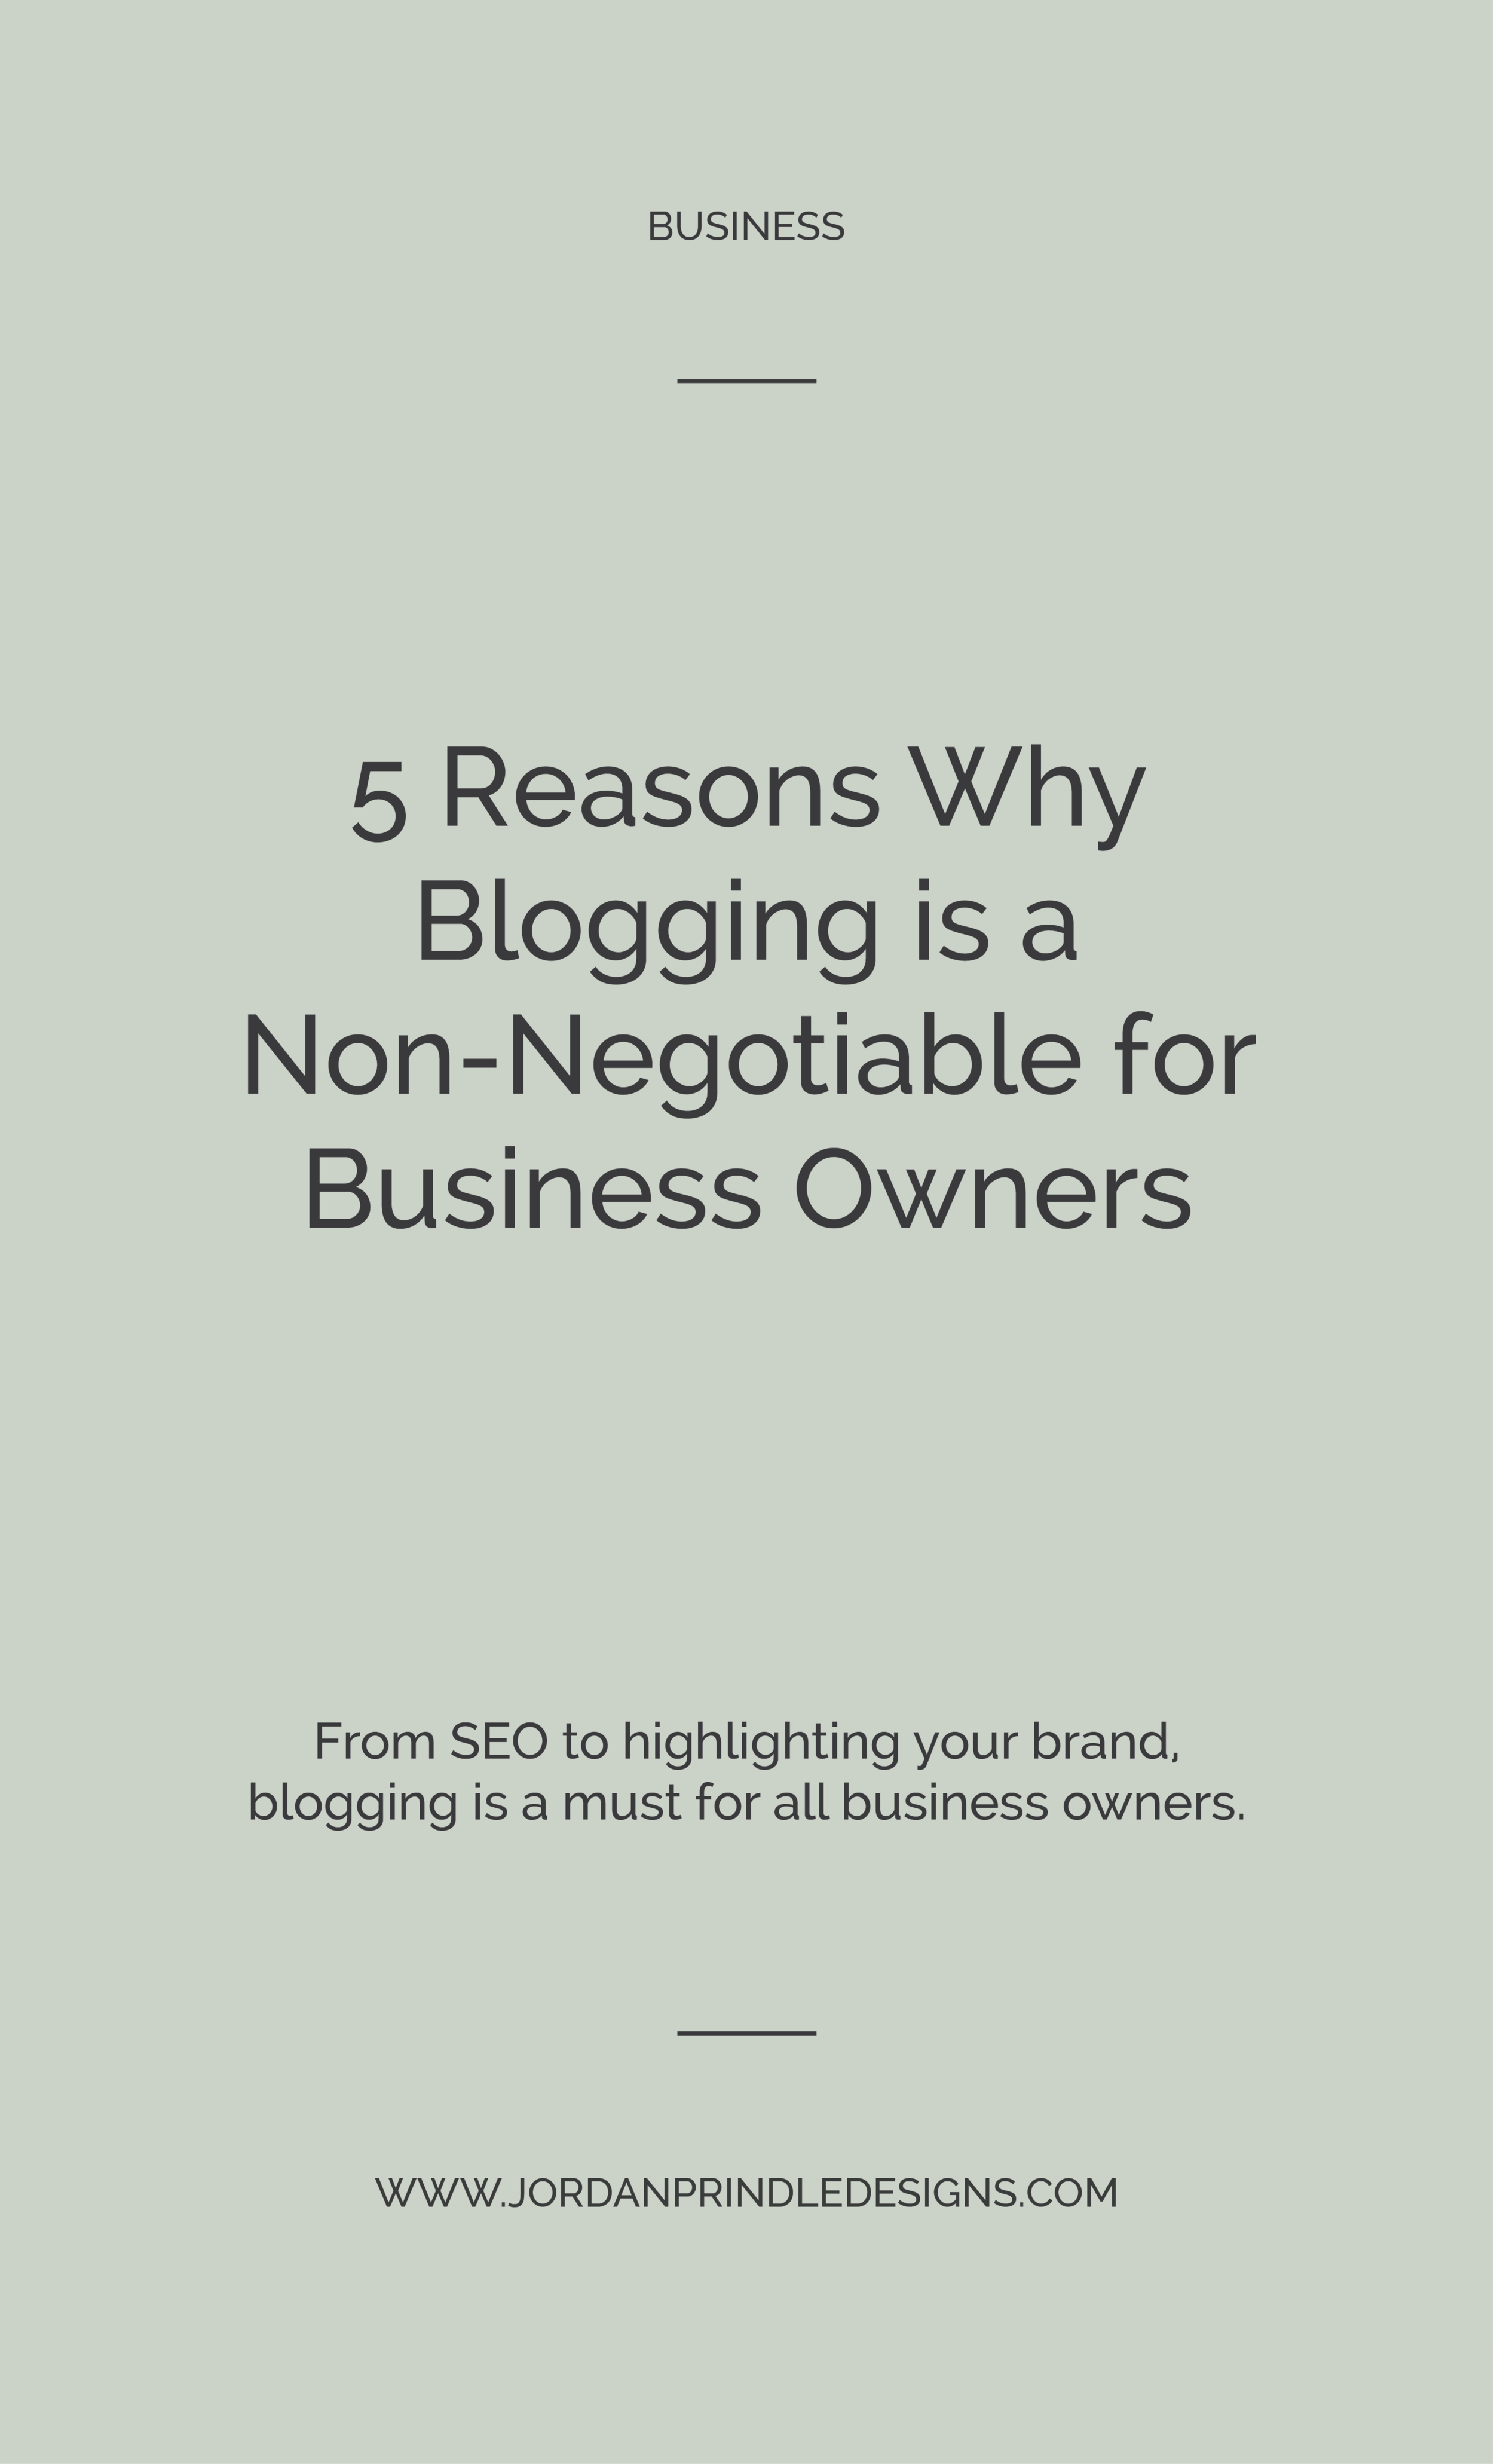 5 Reasons Why Blogging is a Non-Negotiable for Business Owners | From boosting #SEO to highlighting your #brand to providing free and valuable content to your target audience, blogging is a must! Read more at www.jordanprindledesigns.com #blogging #smallbusiness #businesstips